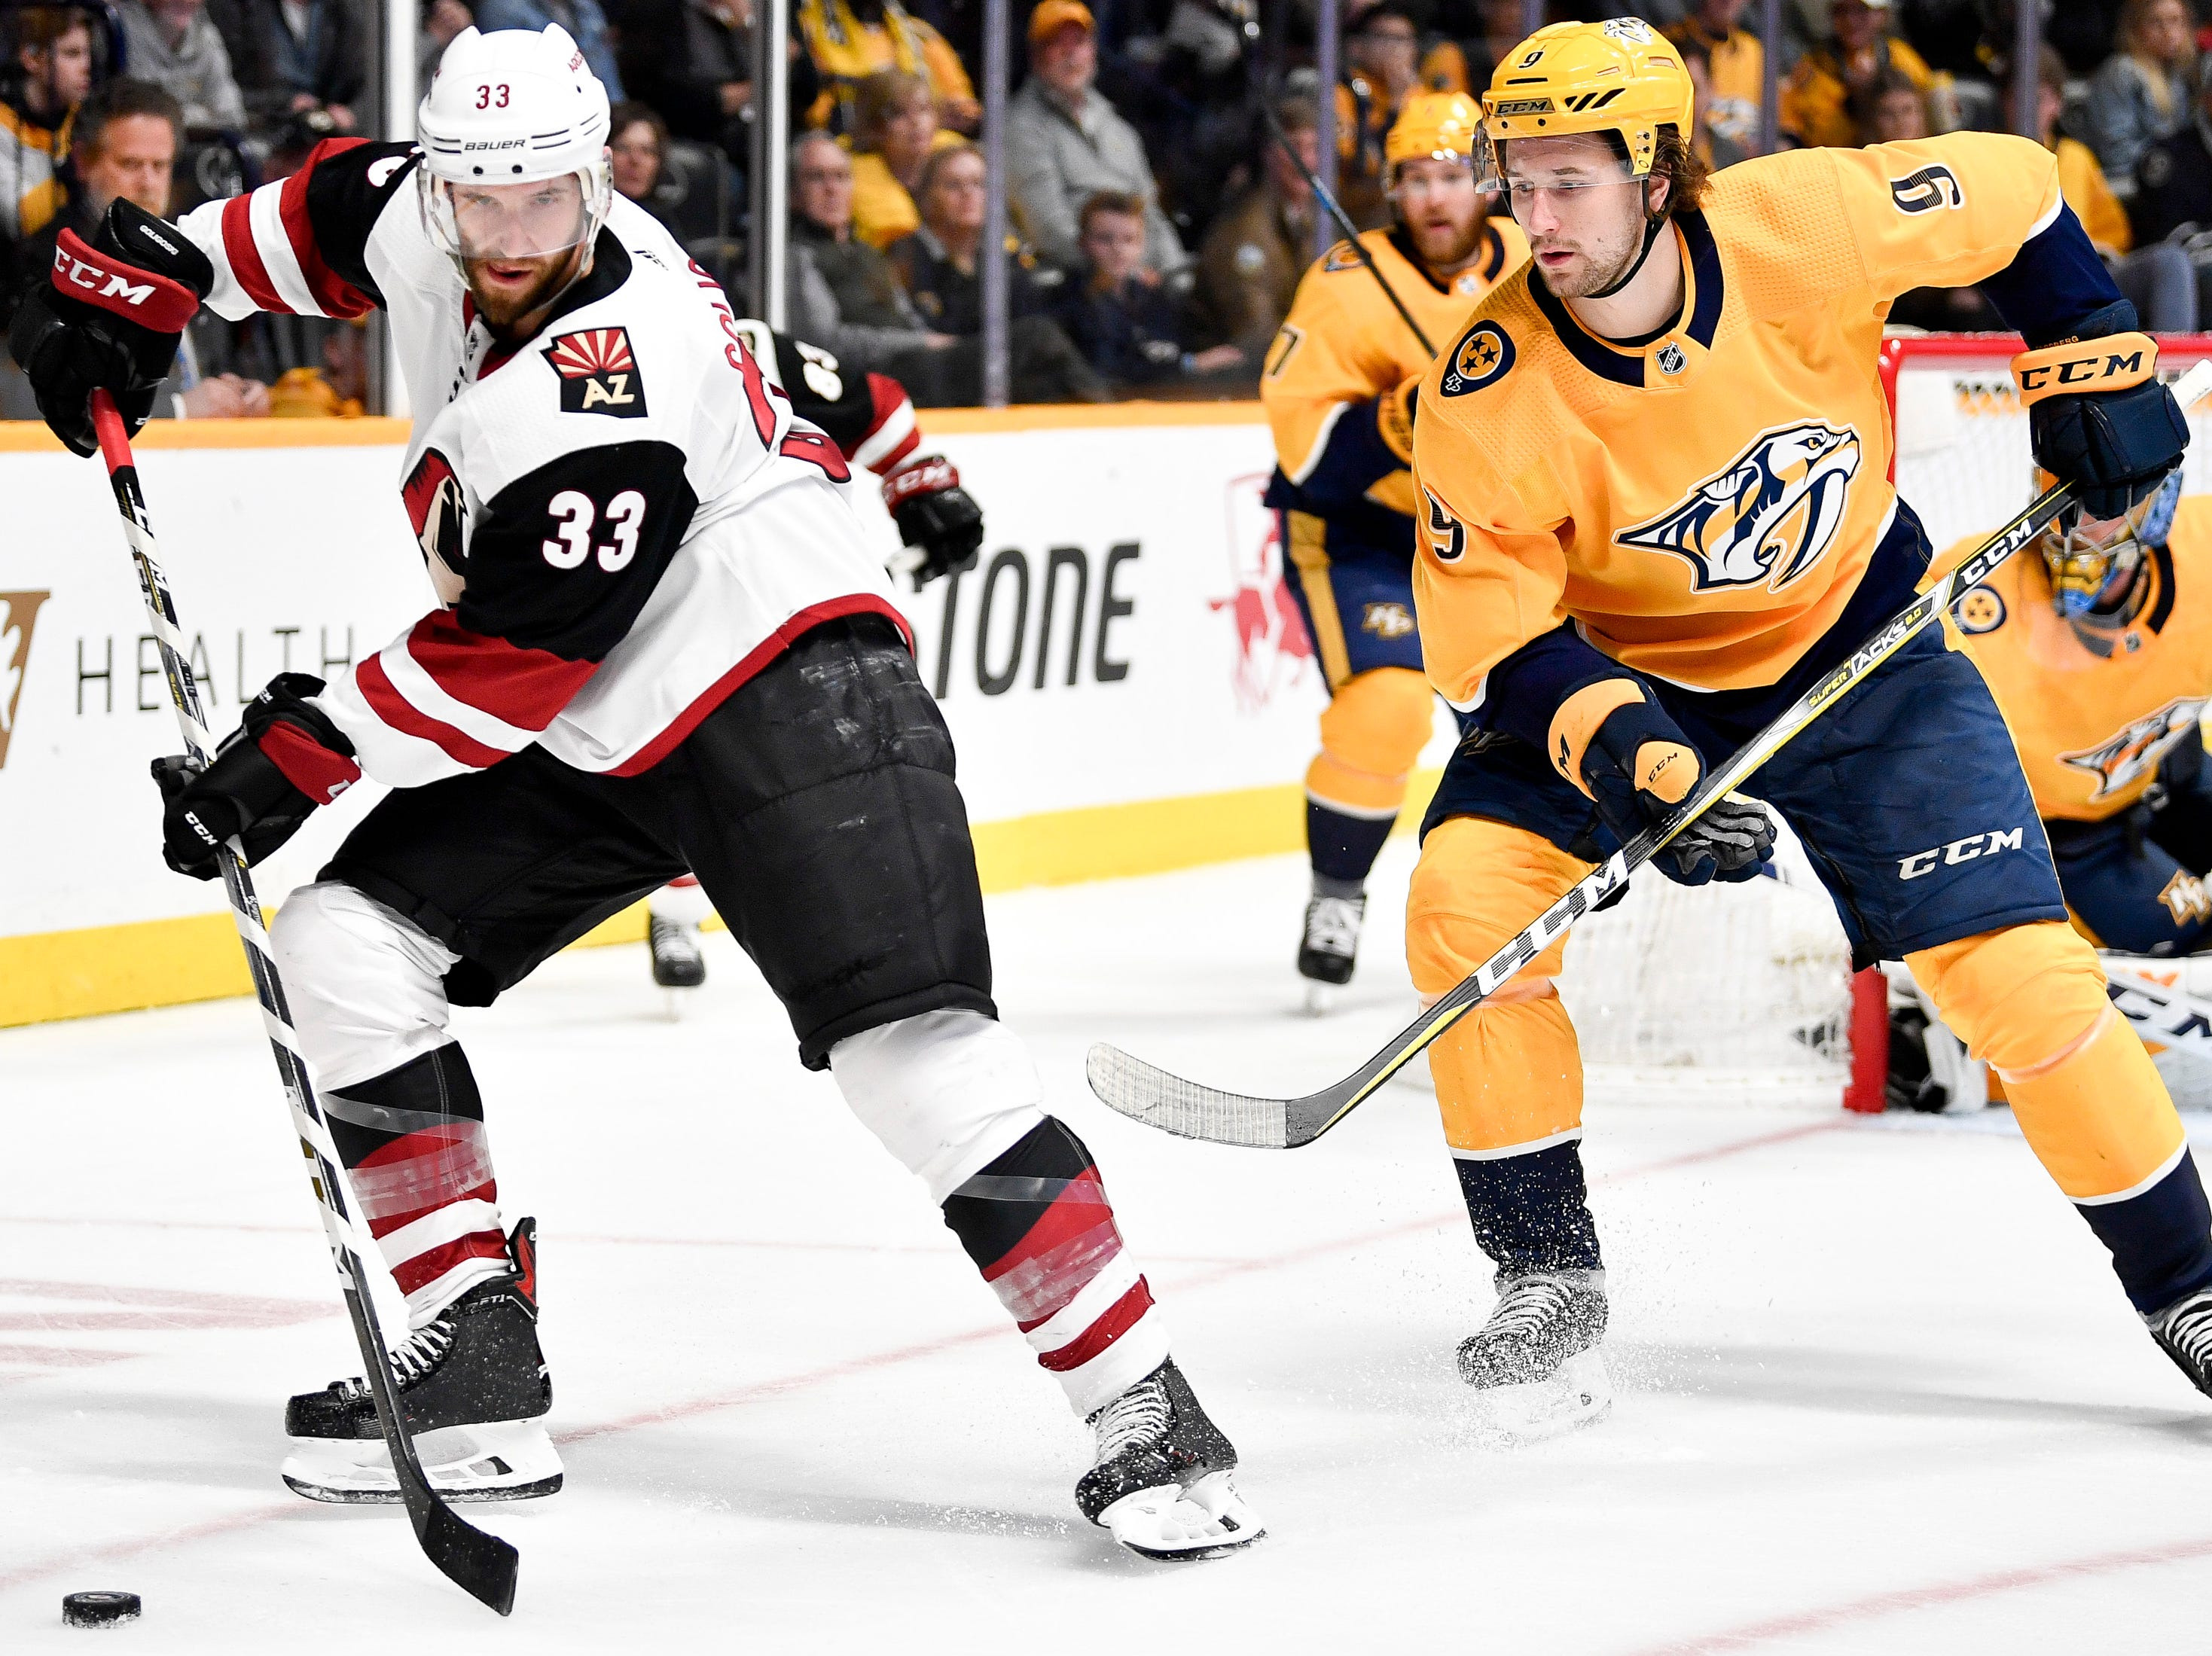 Arizona Coyotes defenseman Alex Goligoski (33) maneuvers around Nashville Predators left wing Filip Forsberg (9) during the second period at Bridgestone Arena in Nashville, Tenn., Tuesday, Feb. 5, 2019.